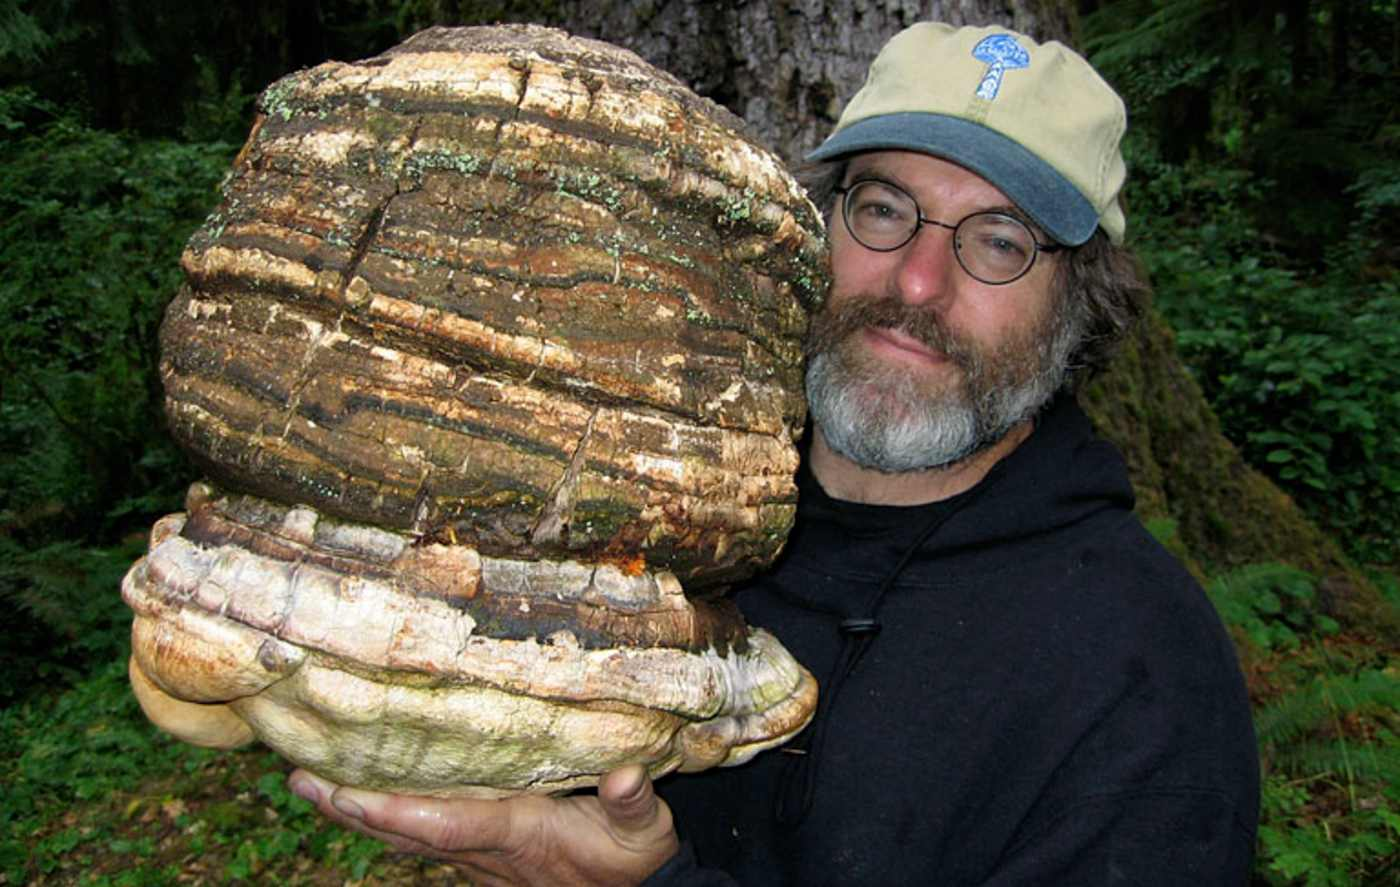 the-steve-irwin-of-mushrooms-paul-stamets-works-to-save-rare-ancient-fungus-to-protect-us-from-pandemics